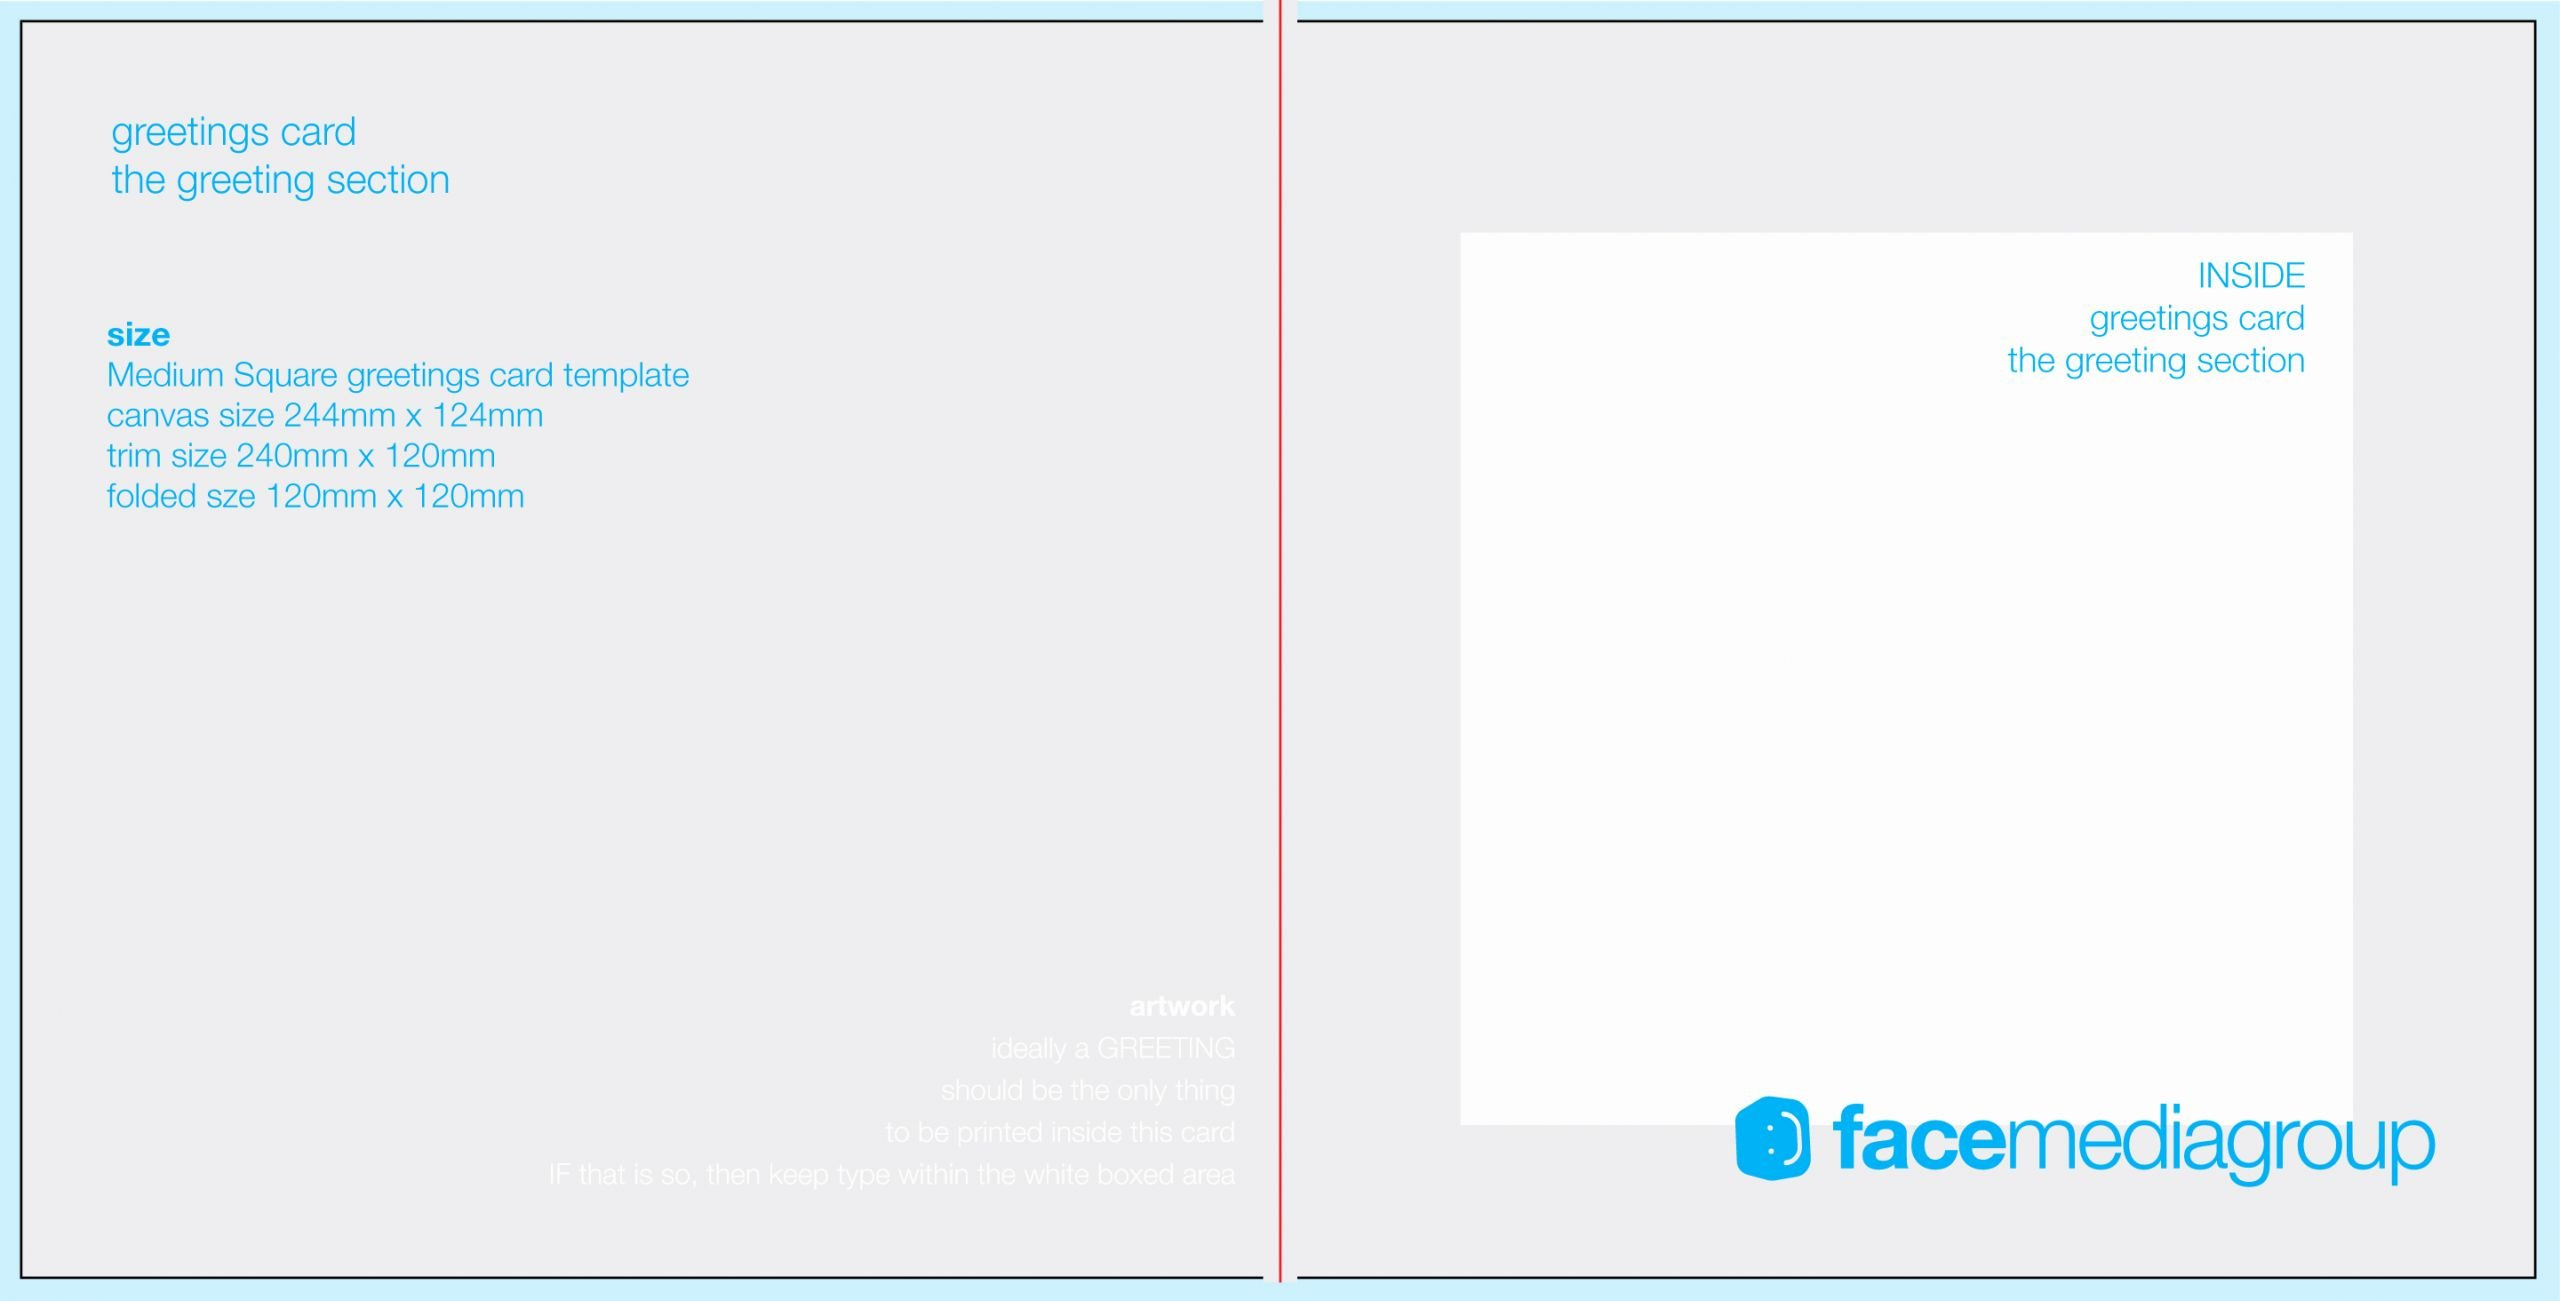 Blank Insurance Card Template Awesome Free Blank Greetings Card Artwork Templates for Download